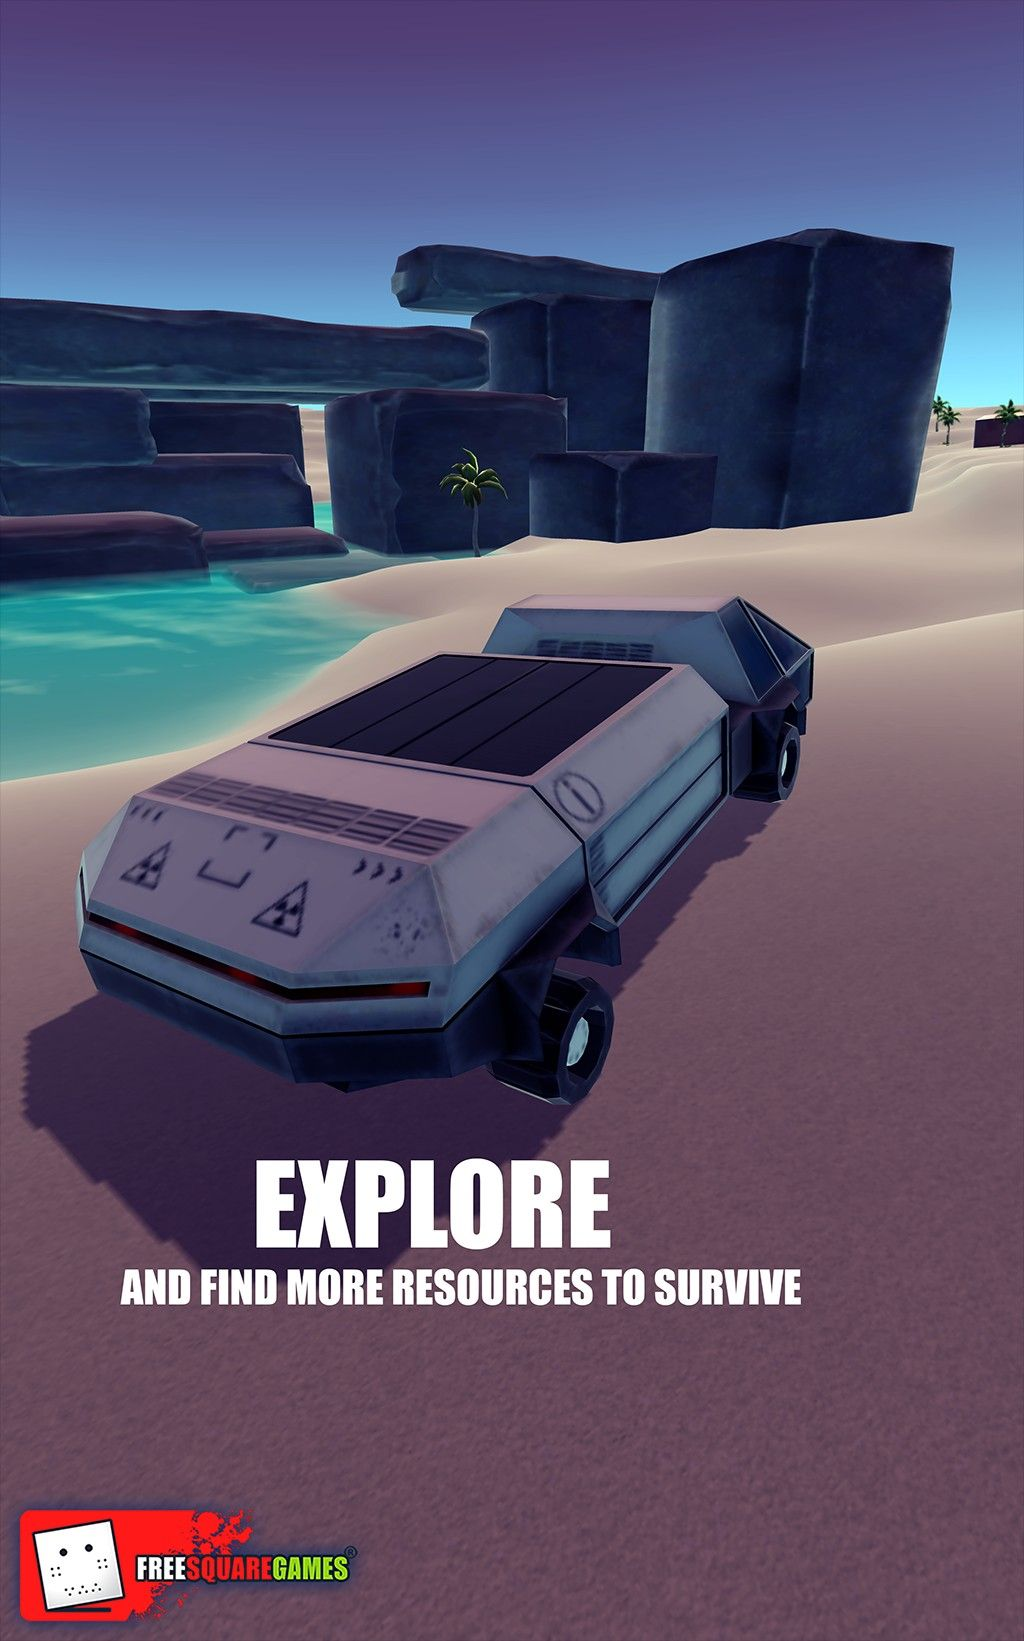 Open world sandbox game with digging, crafting, building